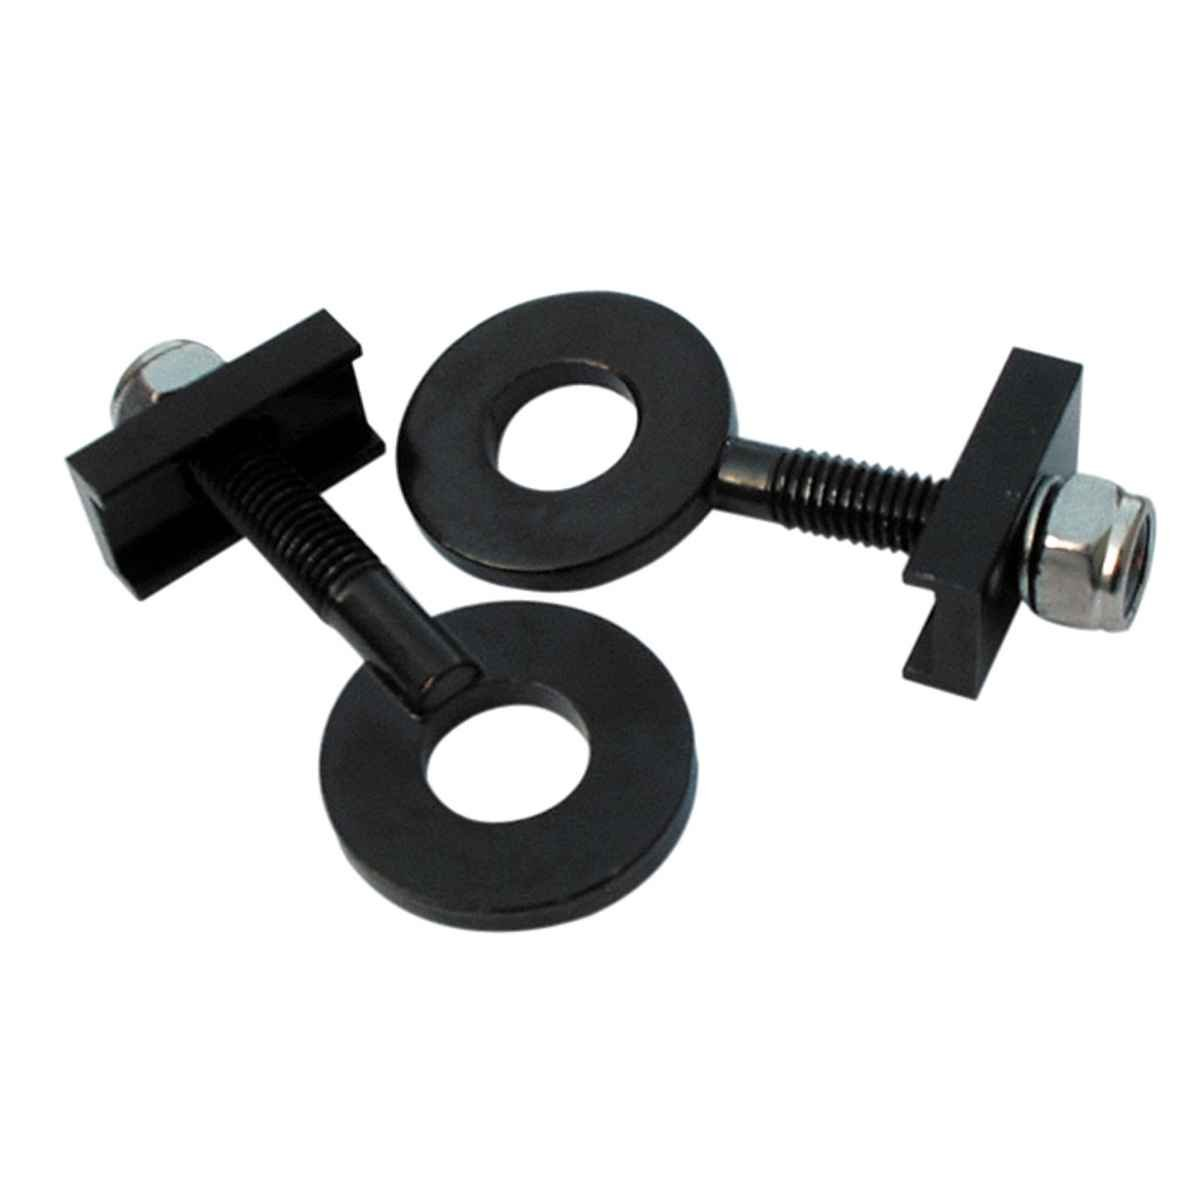 Gusset Disco Steel axle tensioner, 10mm - Black pr